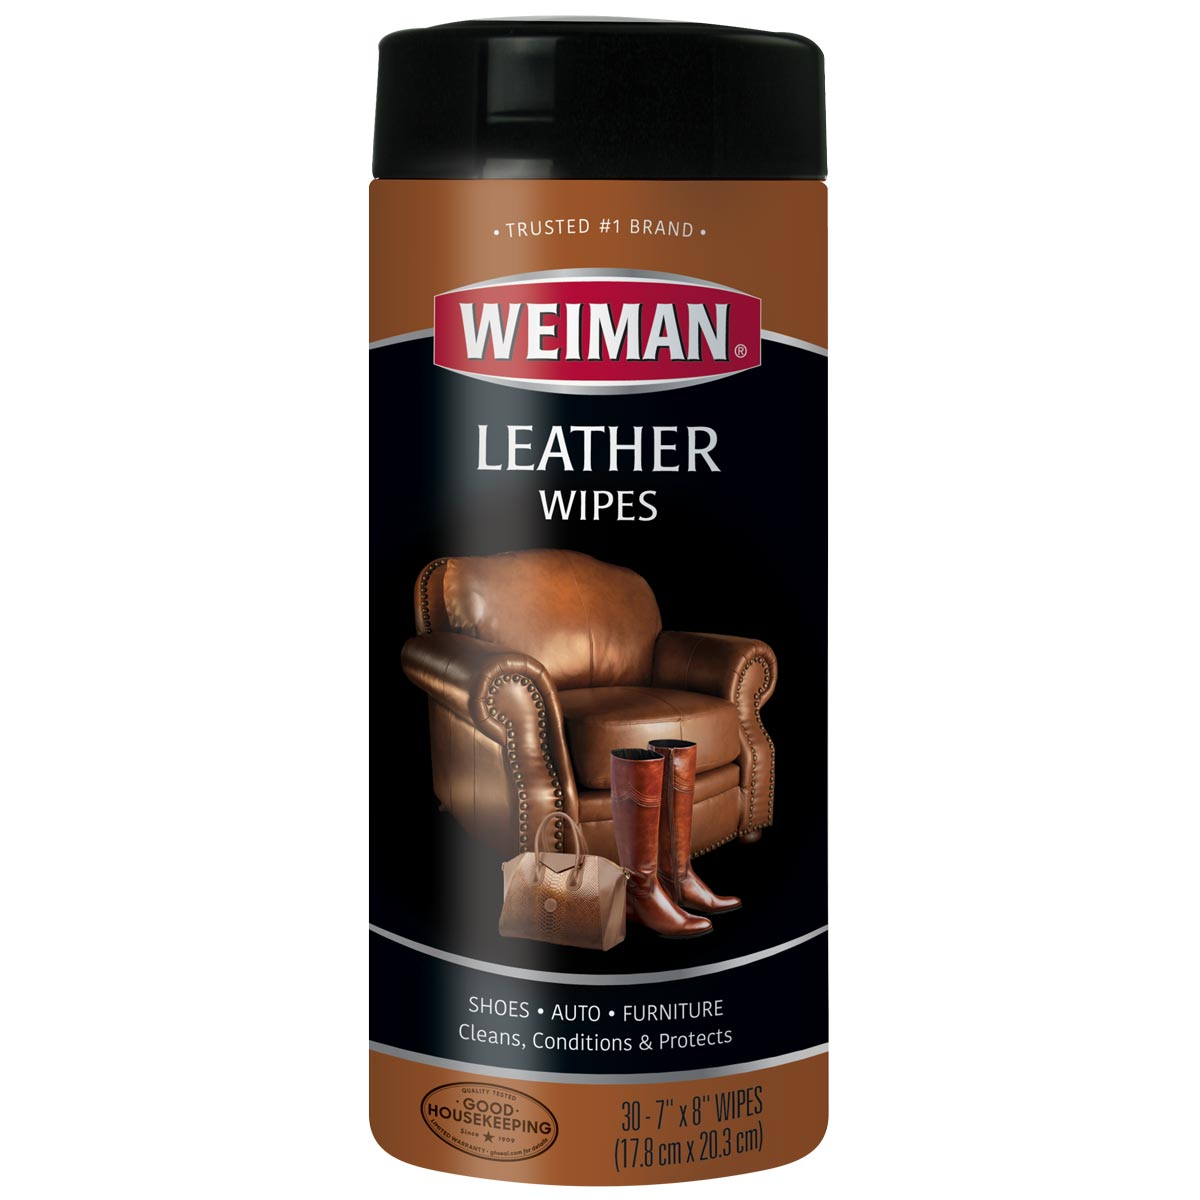 https://googone.com/media/catalog/product/w/e/weiman-leather-wipes_front_7.jpg